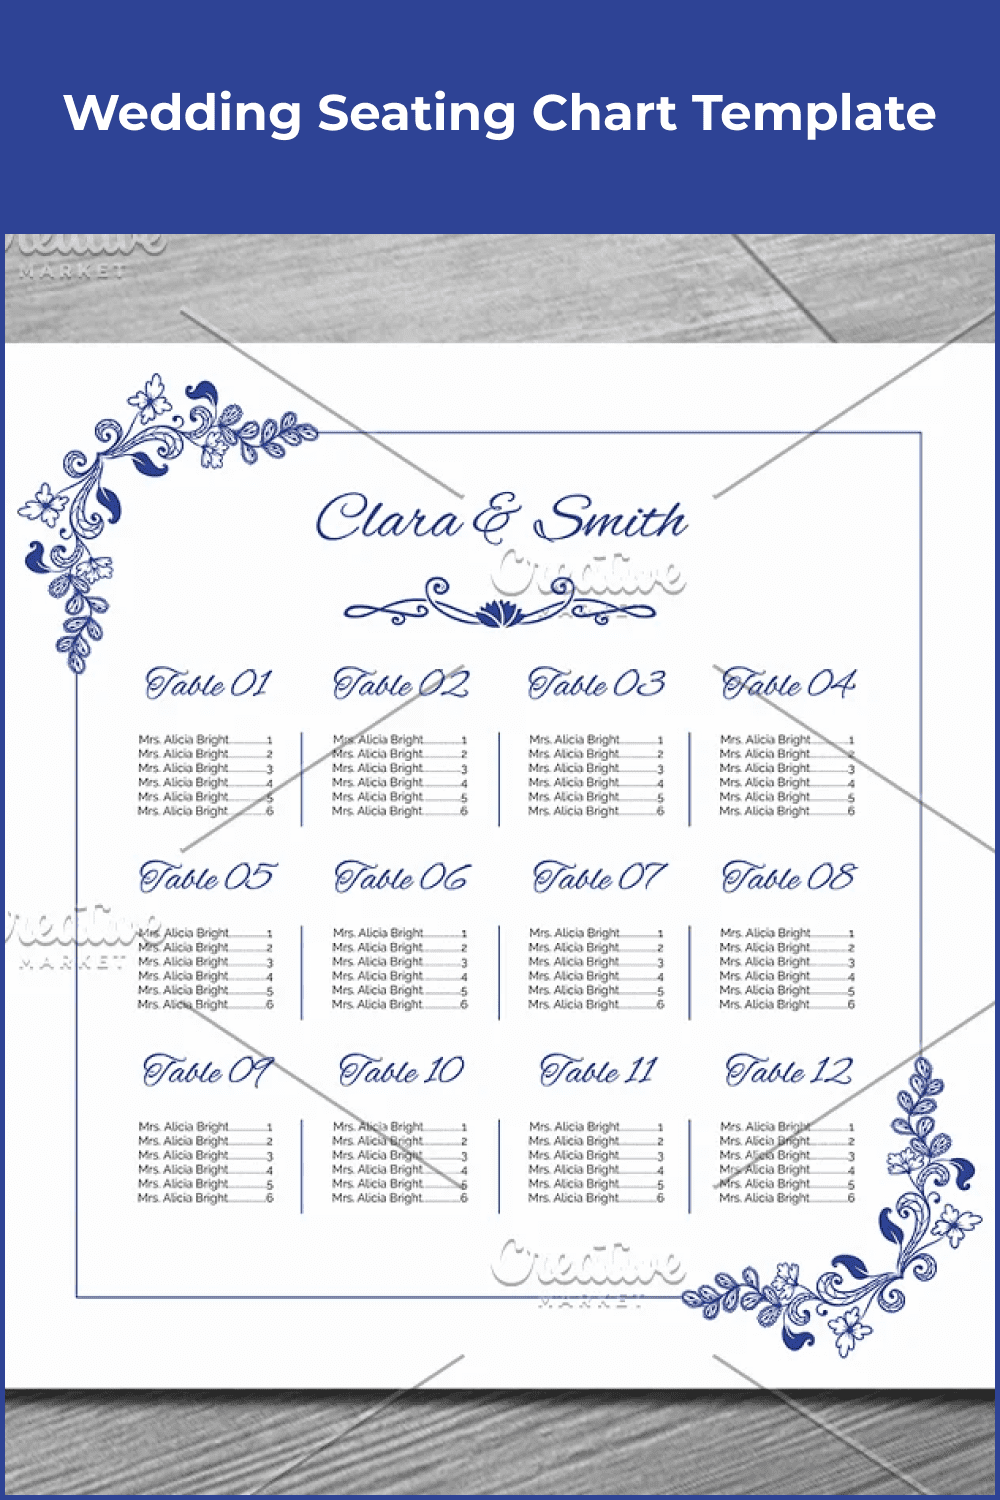 Arrangement of tables for a wedding in blue with flowers.